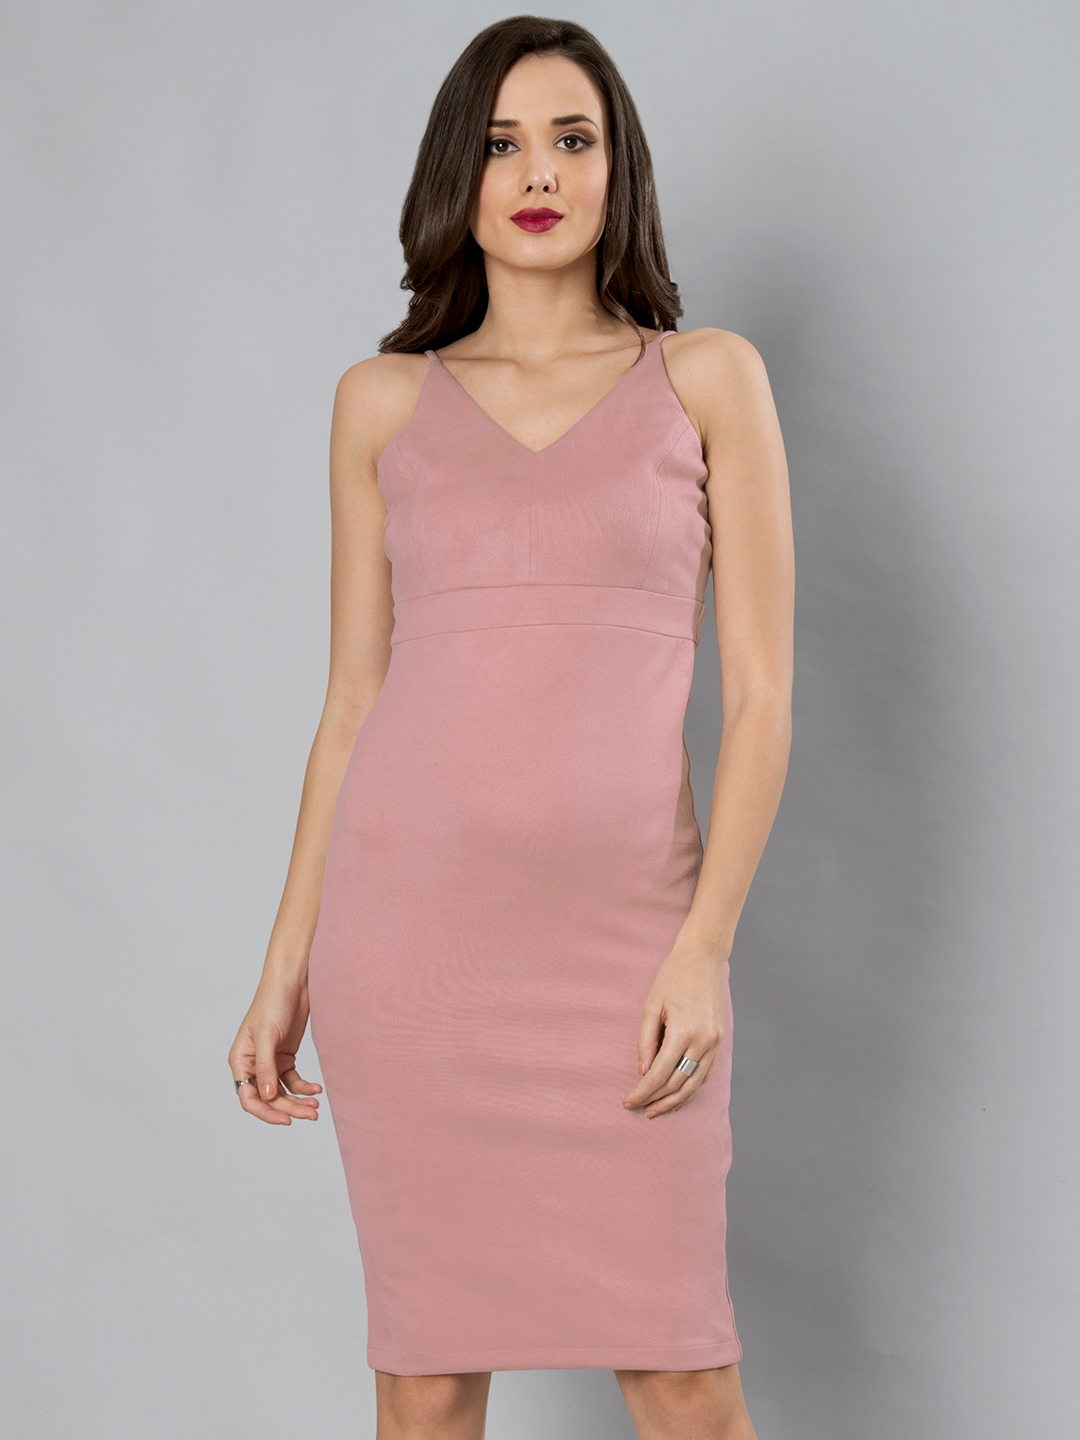 e863b7644f8a Buy FabAlley Women Pink Solid Bodycon Dress - Dresses for Women ...